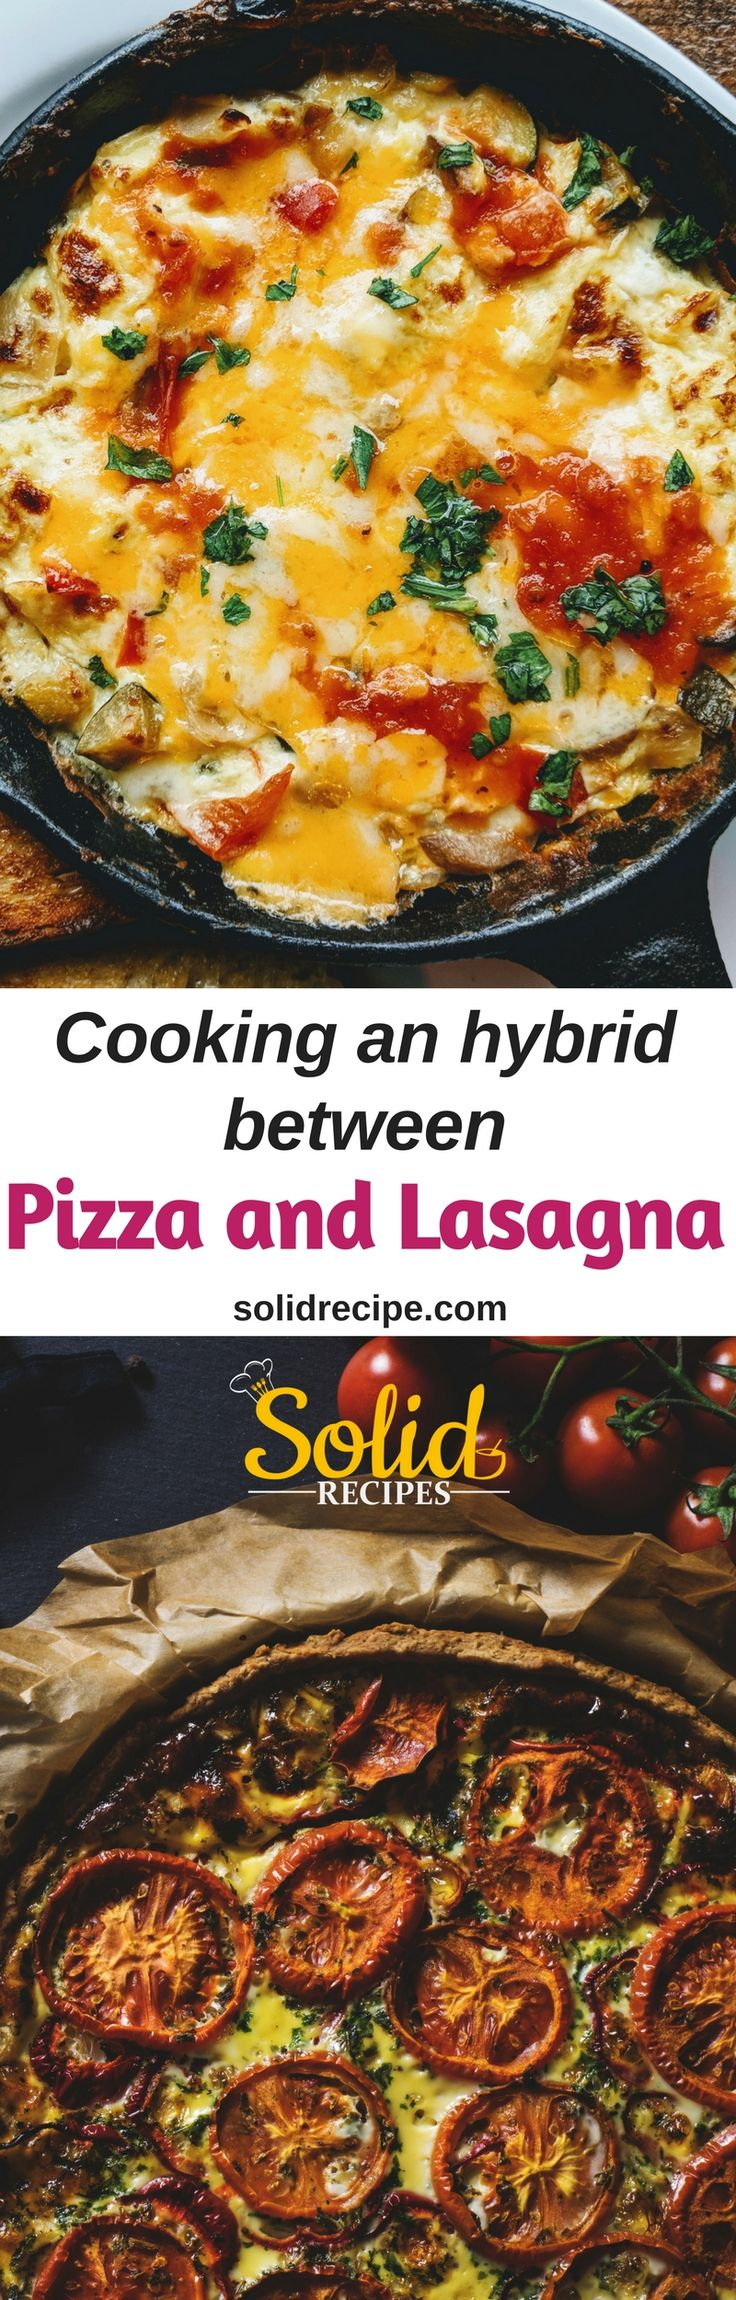 Cooking an hybrid between pizza and lasagna Not always the photos matched the recipe. pizza dough recipe | pizza recipes | pizza dough | pizza dip | pizza sauce | Pizza Hut | California Pizza Kitchen | Pizza McPizza | Pizza, Sandwiches, Pasta & Cheesy Stuff | pizza & meatza | Pizza Recipes | lasagna recipe | lasagna | lasagna soup | lasagna roll ups | lasagna recipe easy | Lasagna Is Amazing | Lasagna Thecat | Sharanya Munshi | Lasagna Recipes | Lasagna / Enchiladas  | Lasagna |